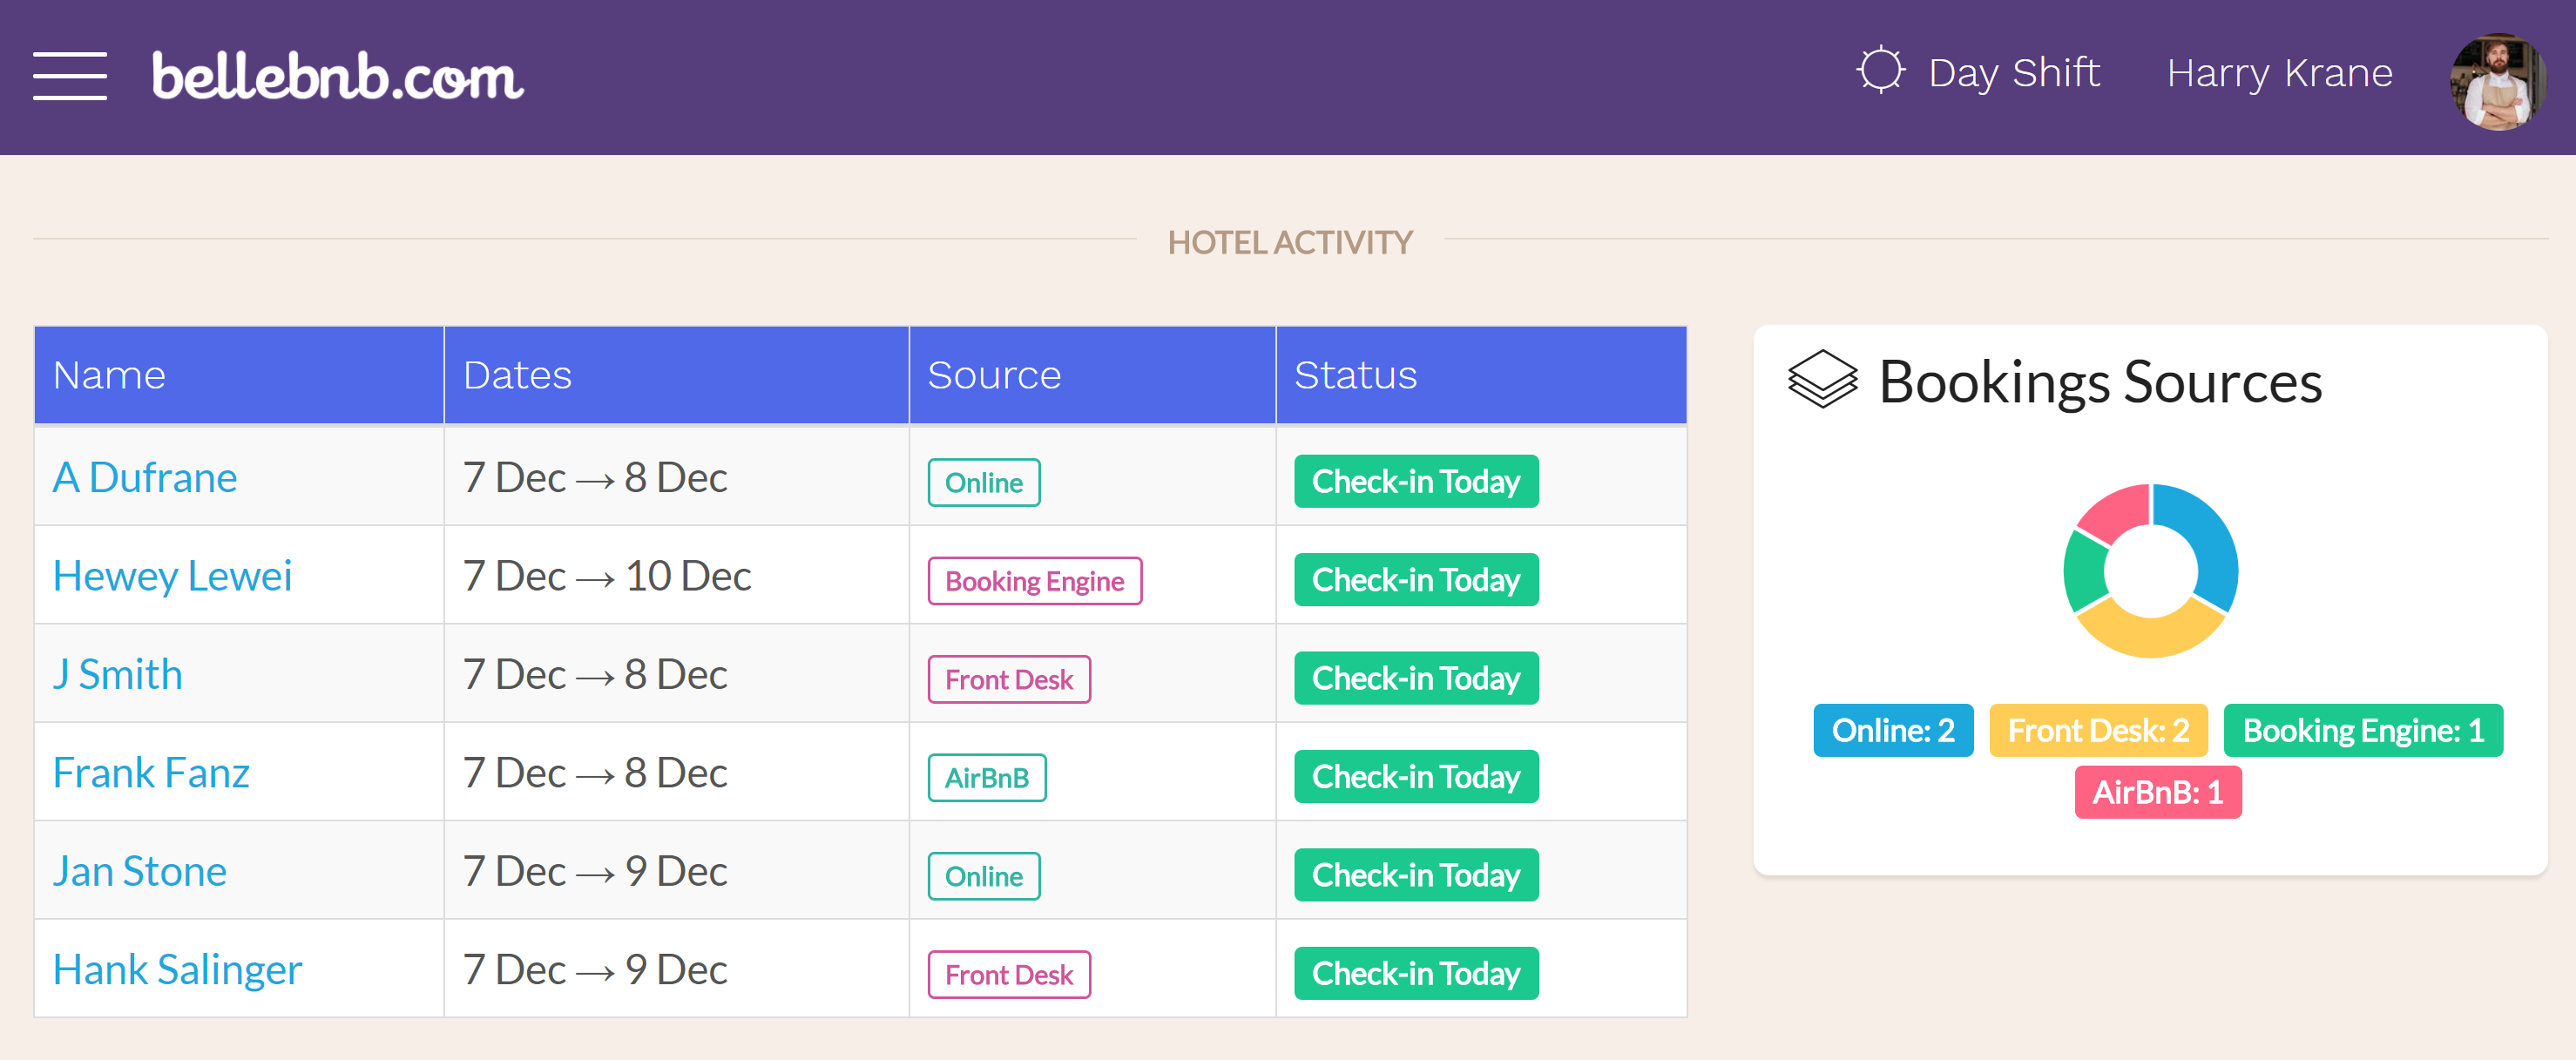 Hotel Price Match The Front Desk manager provides helpful tips and notifications along the right side of a reservation's details view. One that's very important is the 'Price Match' notification, which concerns bookings that were received from exterior channels, like Booking.com and Airbnb.